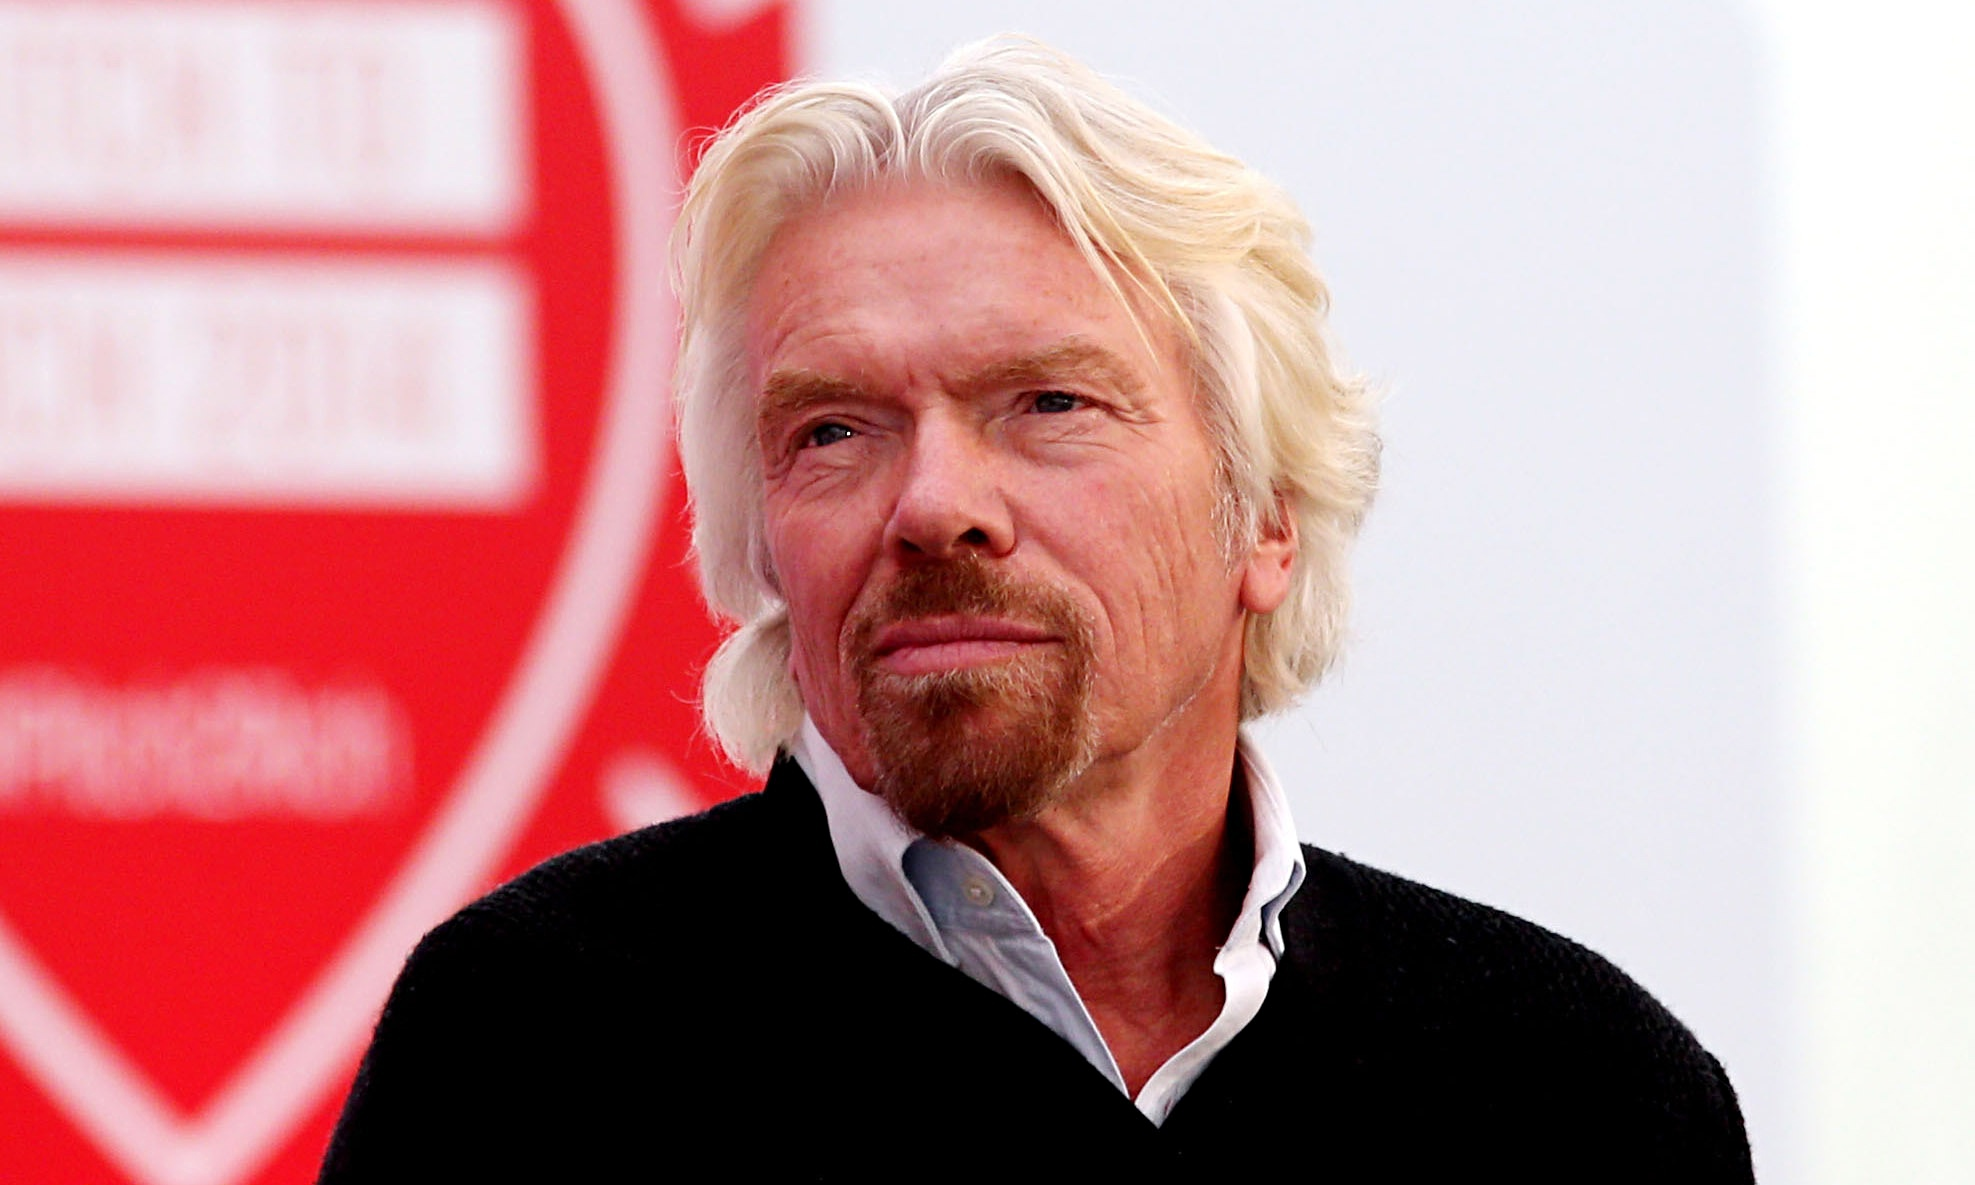 richard branson - photo #11